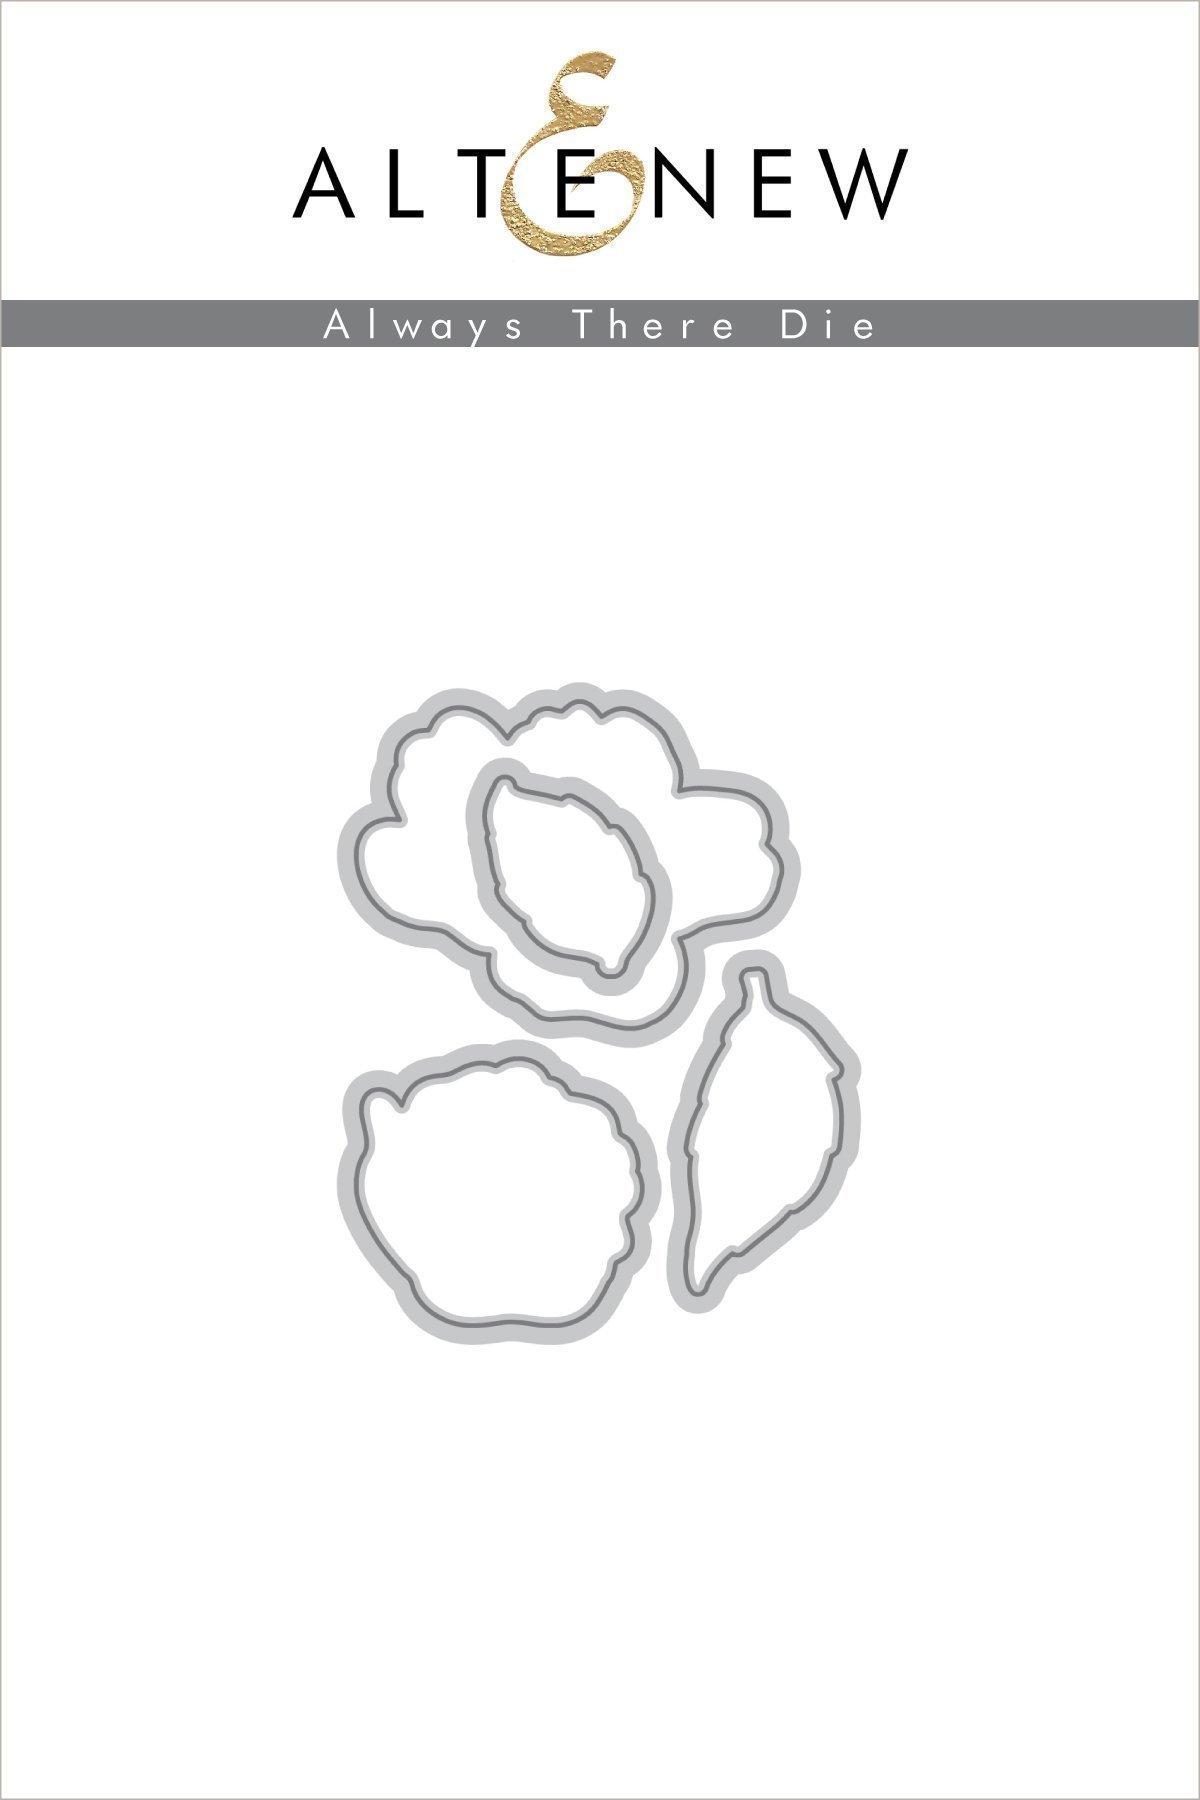 Altenew - Always There Die Set